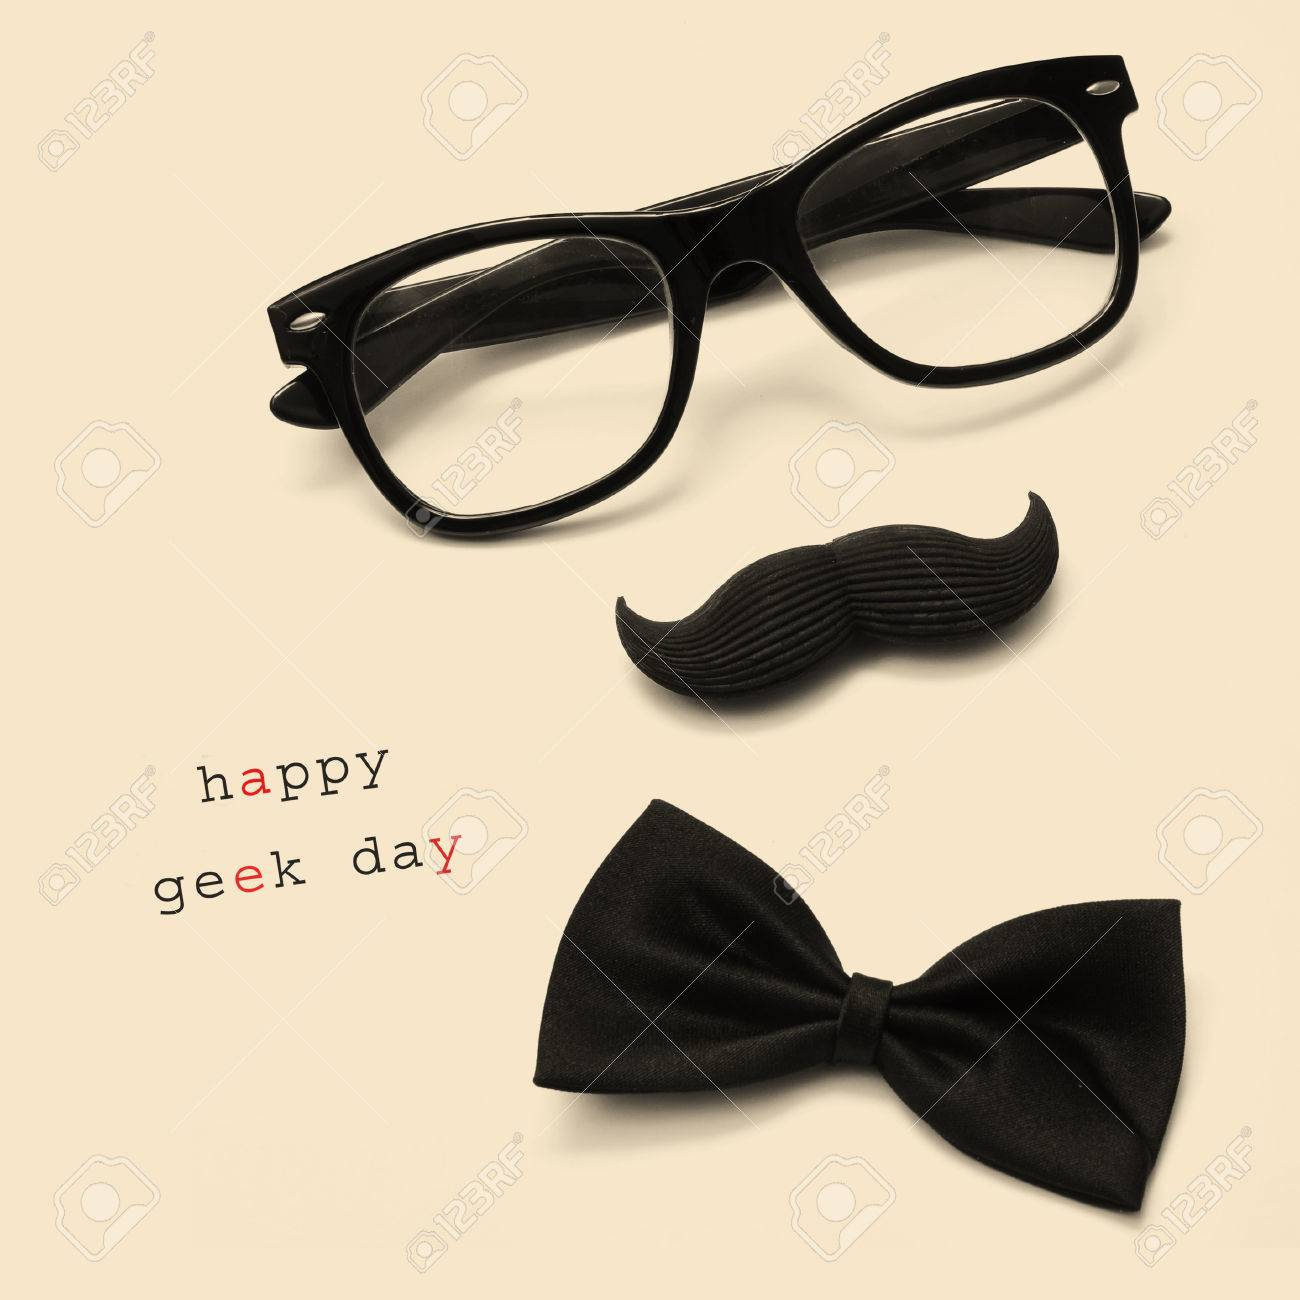 Stock Photo  A Pair Of Glasses, A Mustache, A Bow Tie And The Sentence  Happy Geek Day On A Beige Background